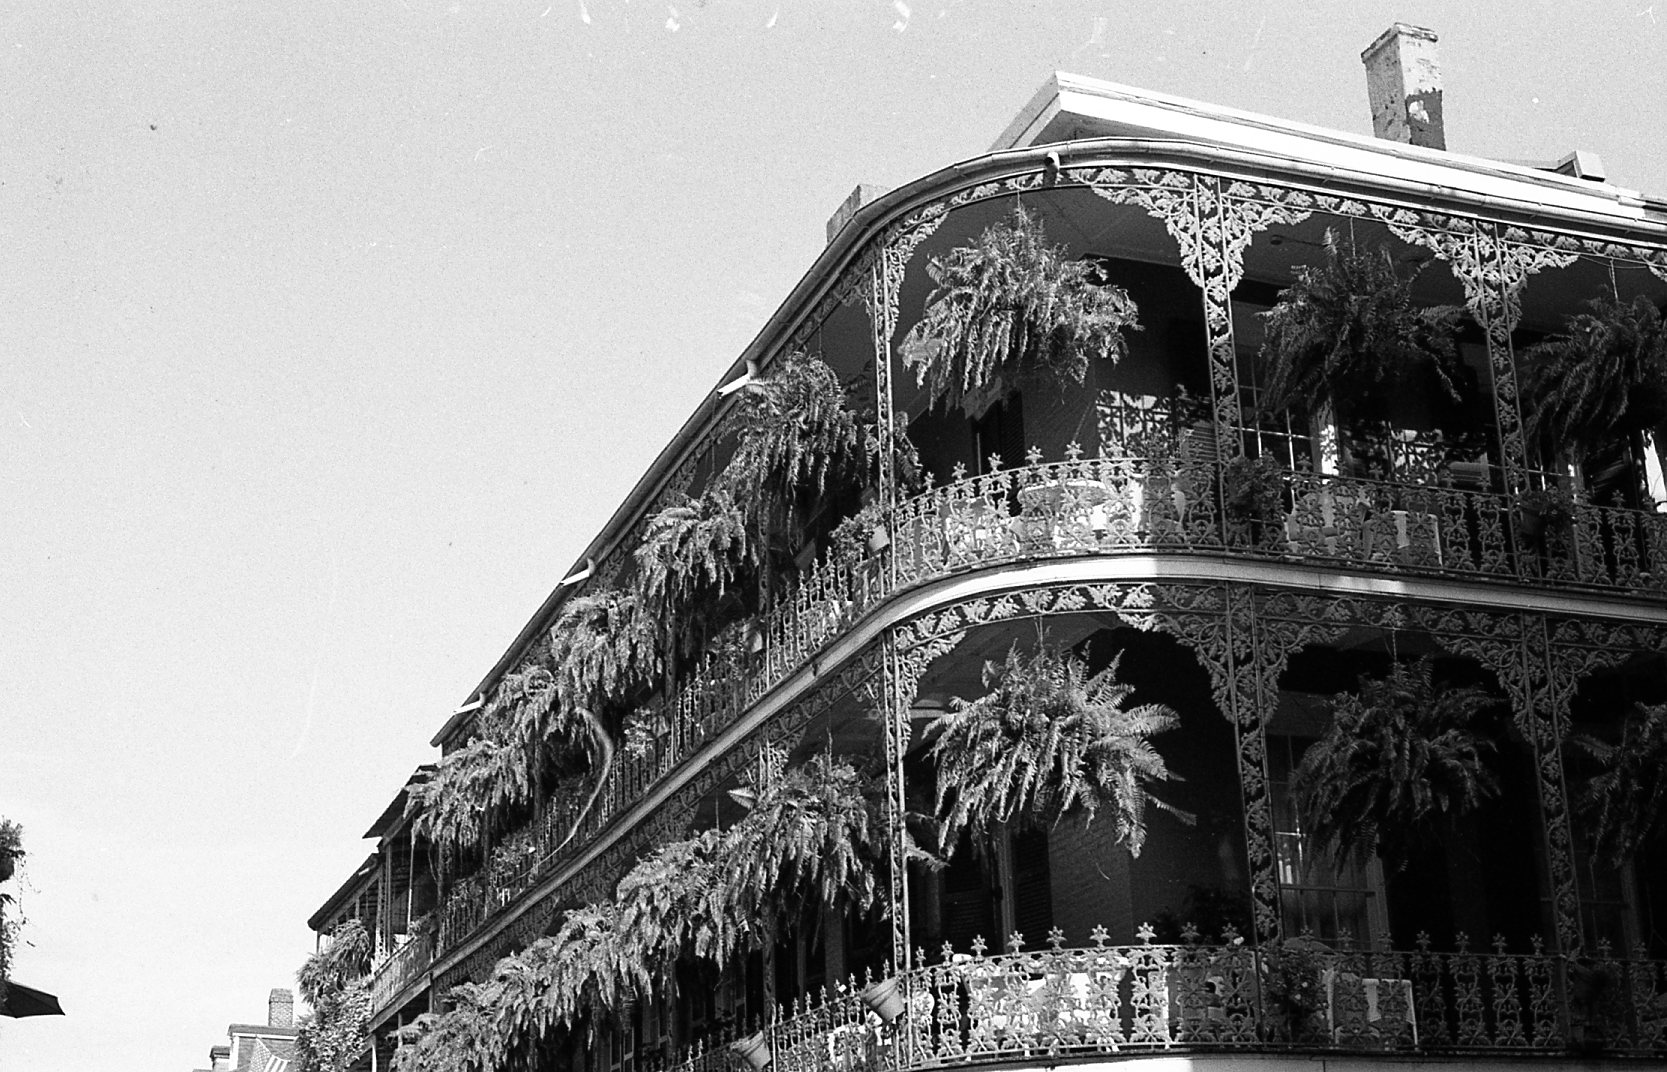 classic New Orleans balcony on 35mm black and white film